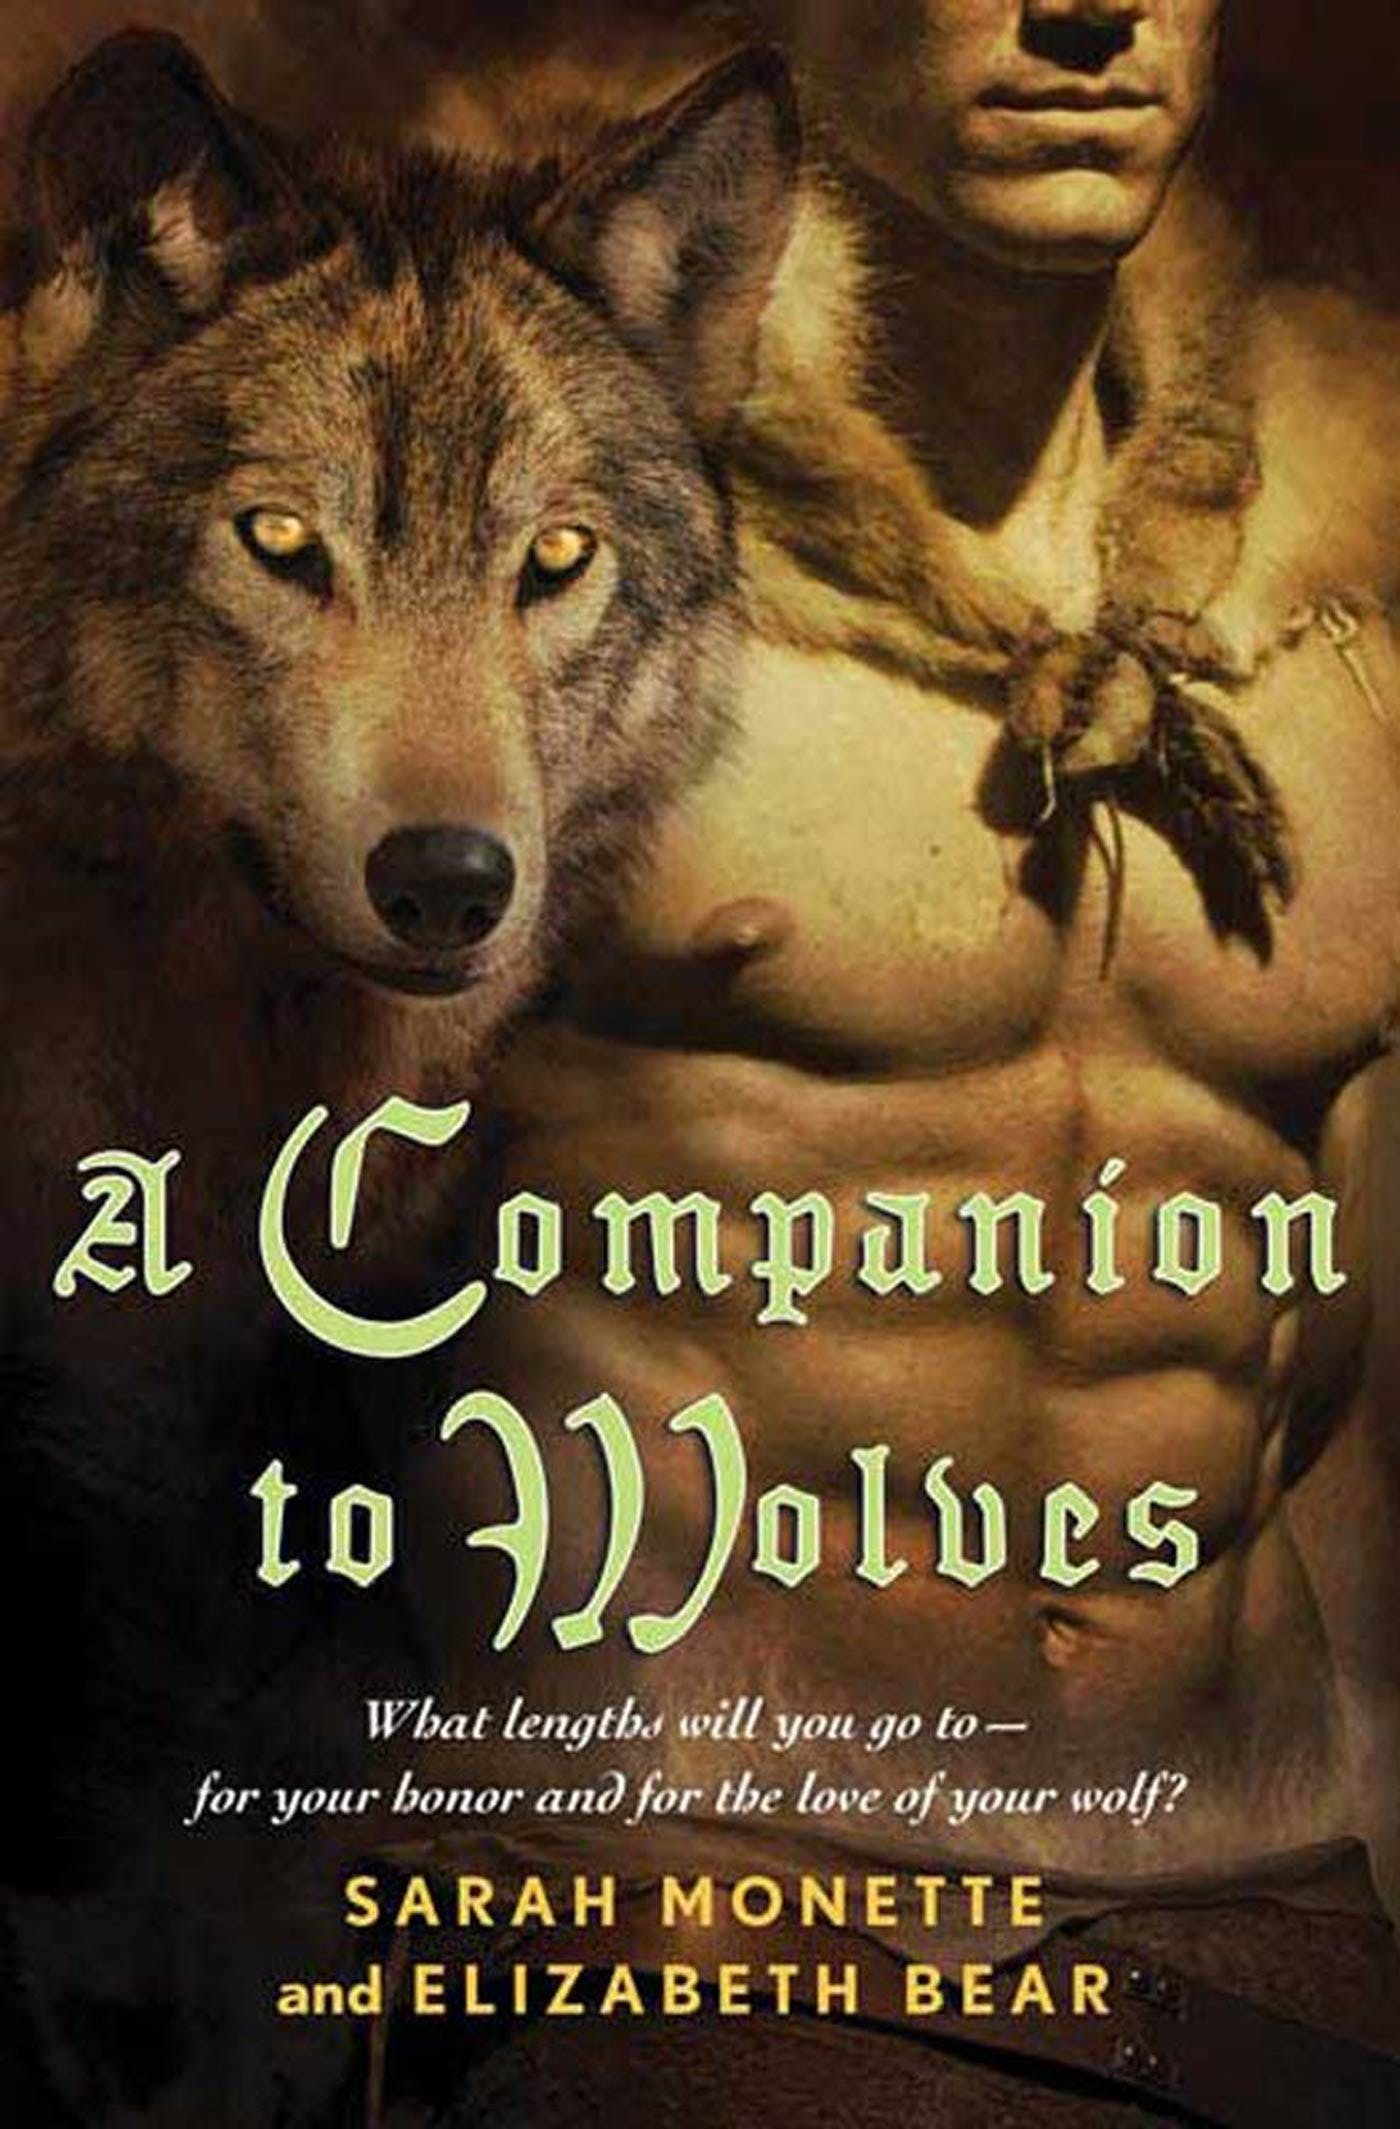 Image of A Companion to Wolves